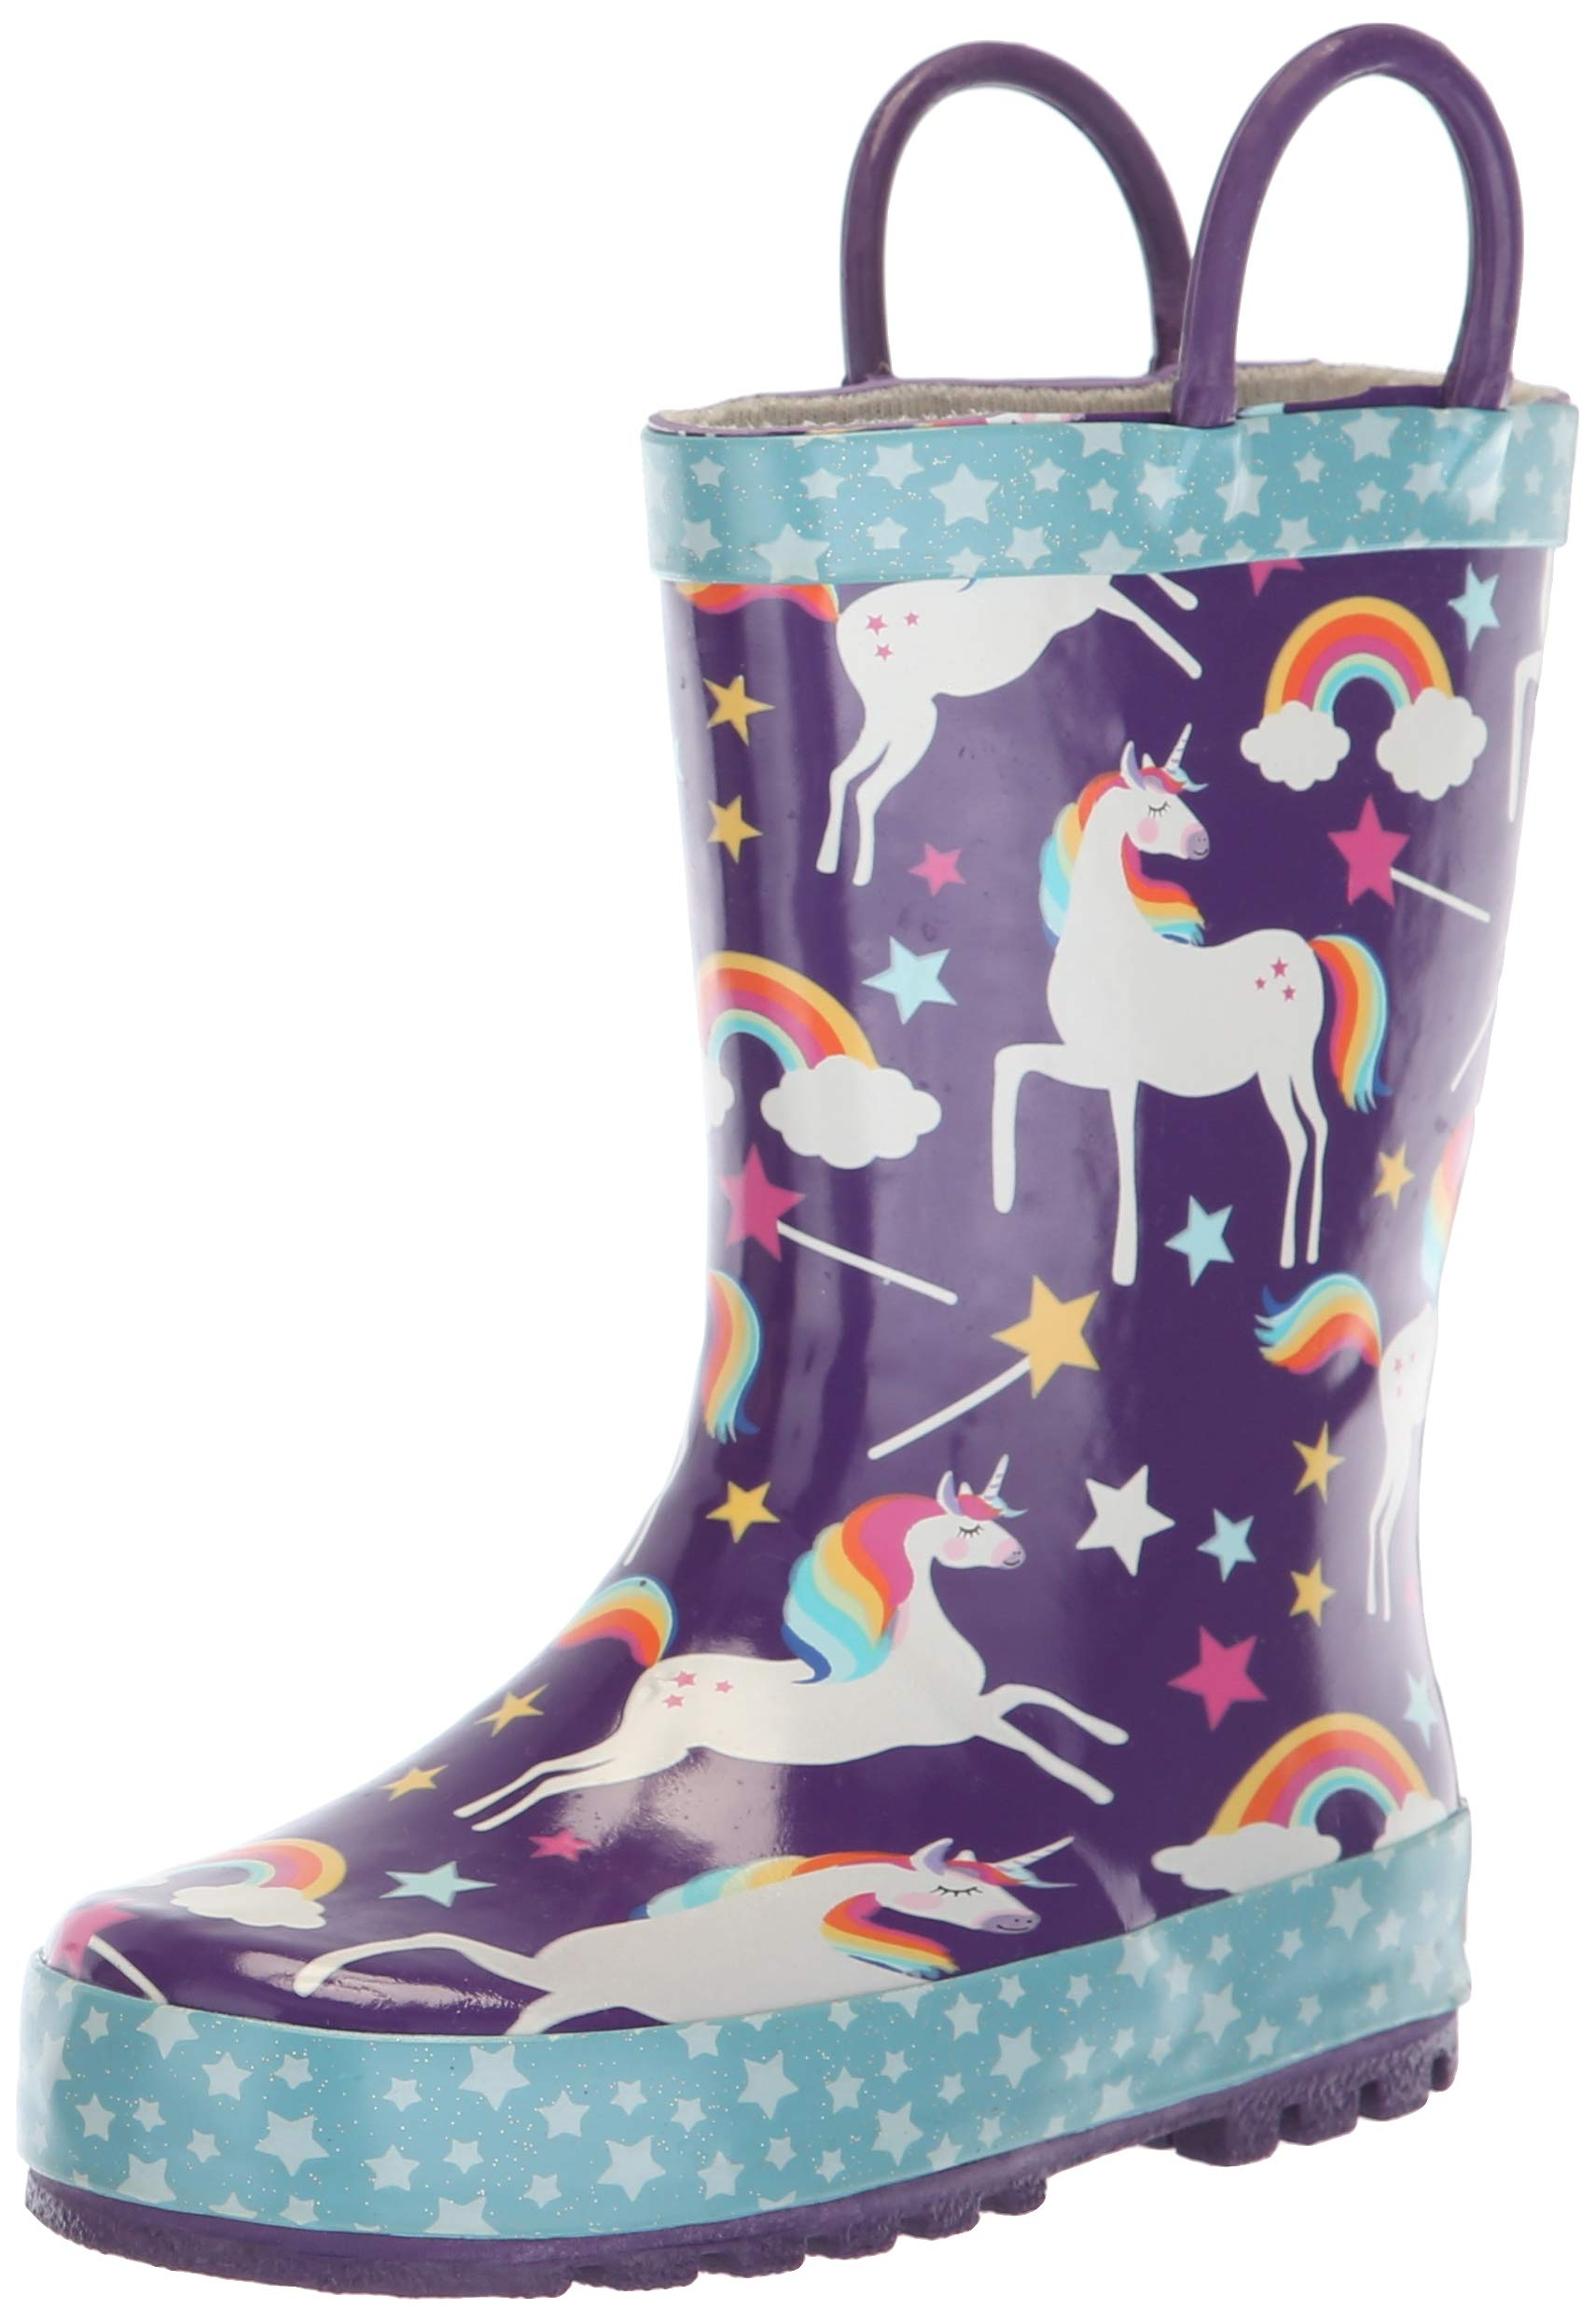 64098d36eed Western Chief Girls Waterproof Printed Rain Boot with Easy Pull on Handles  product image